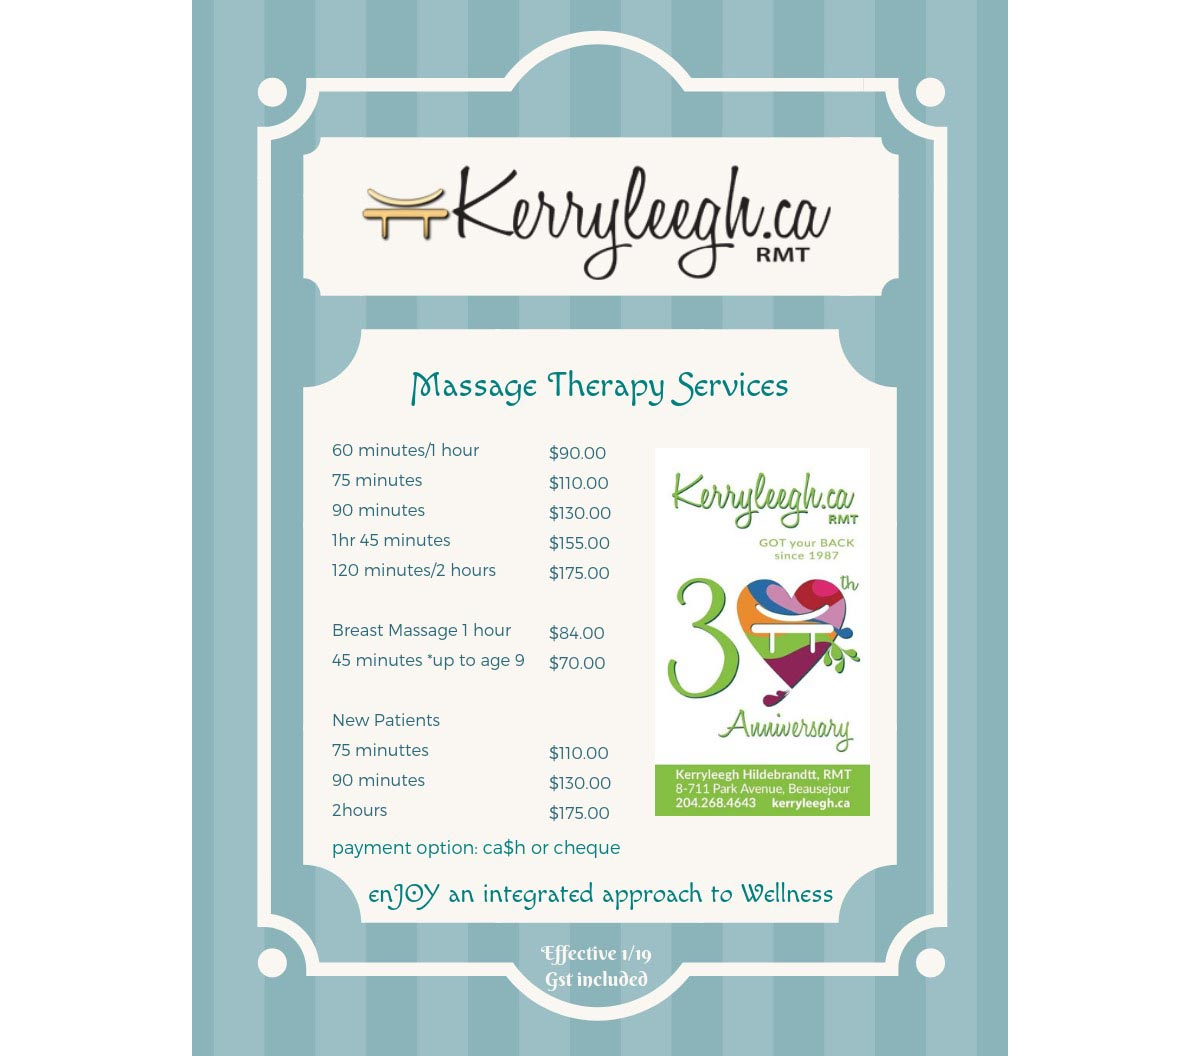 Kerryleegh Massage Therapy Fees 2019